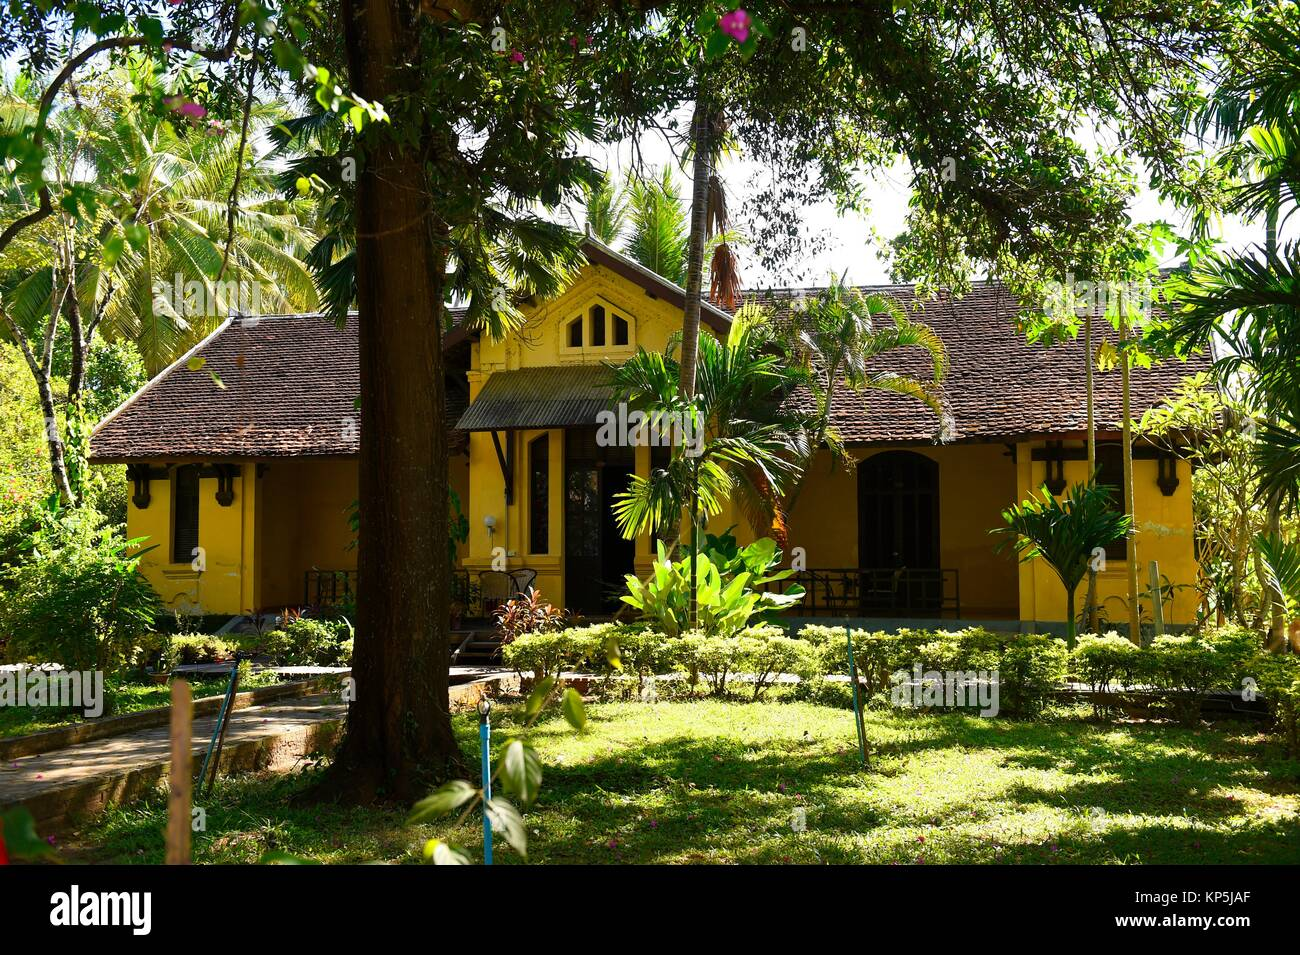 Colonial House In Don Khone IslandProvince Of ChampassakSouth LaosSoutheast Asia